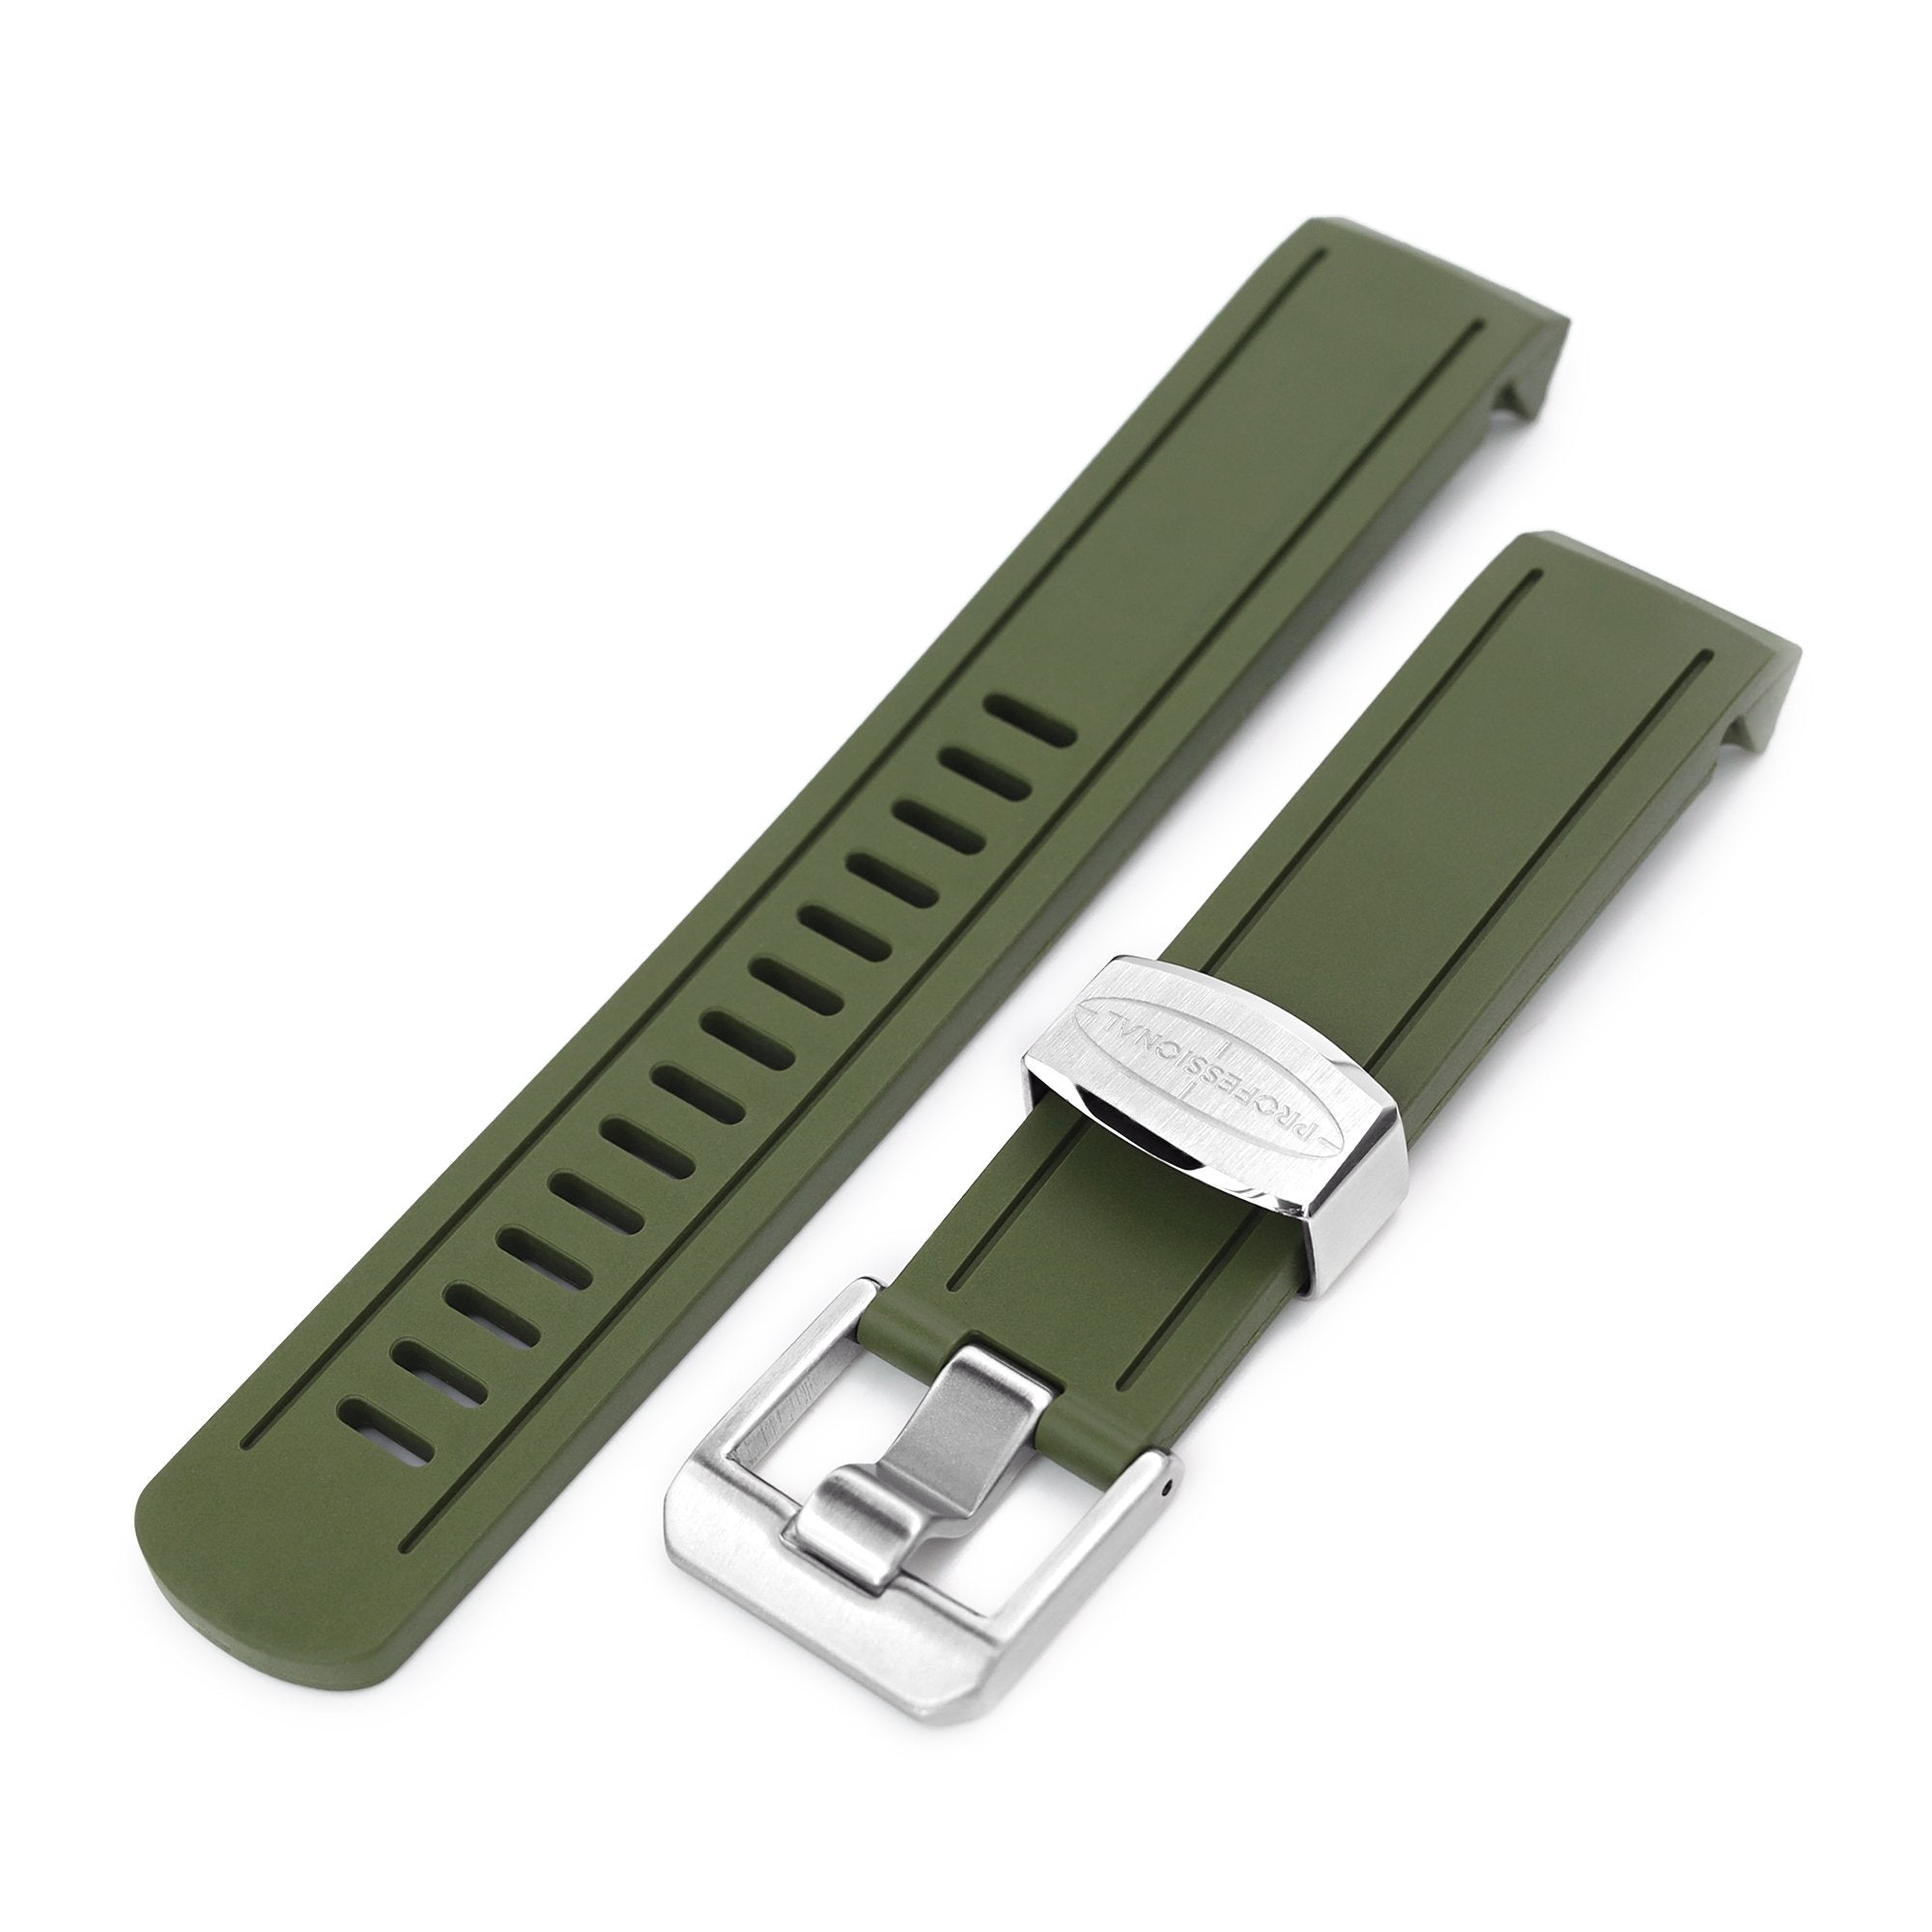 20mm Crafter Blue Military Green Rubber Curved Lug Watch Band for Seiko Sumo SBDC001 Strapcode Watch Bands